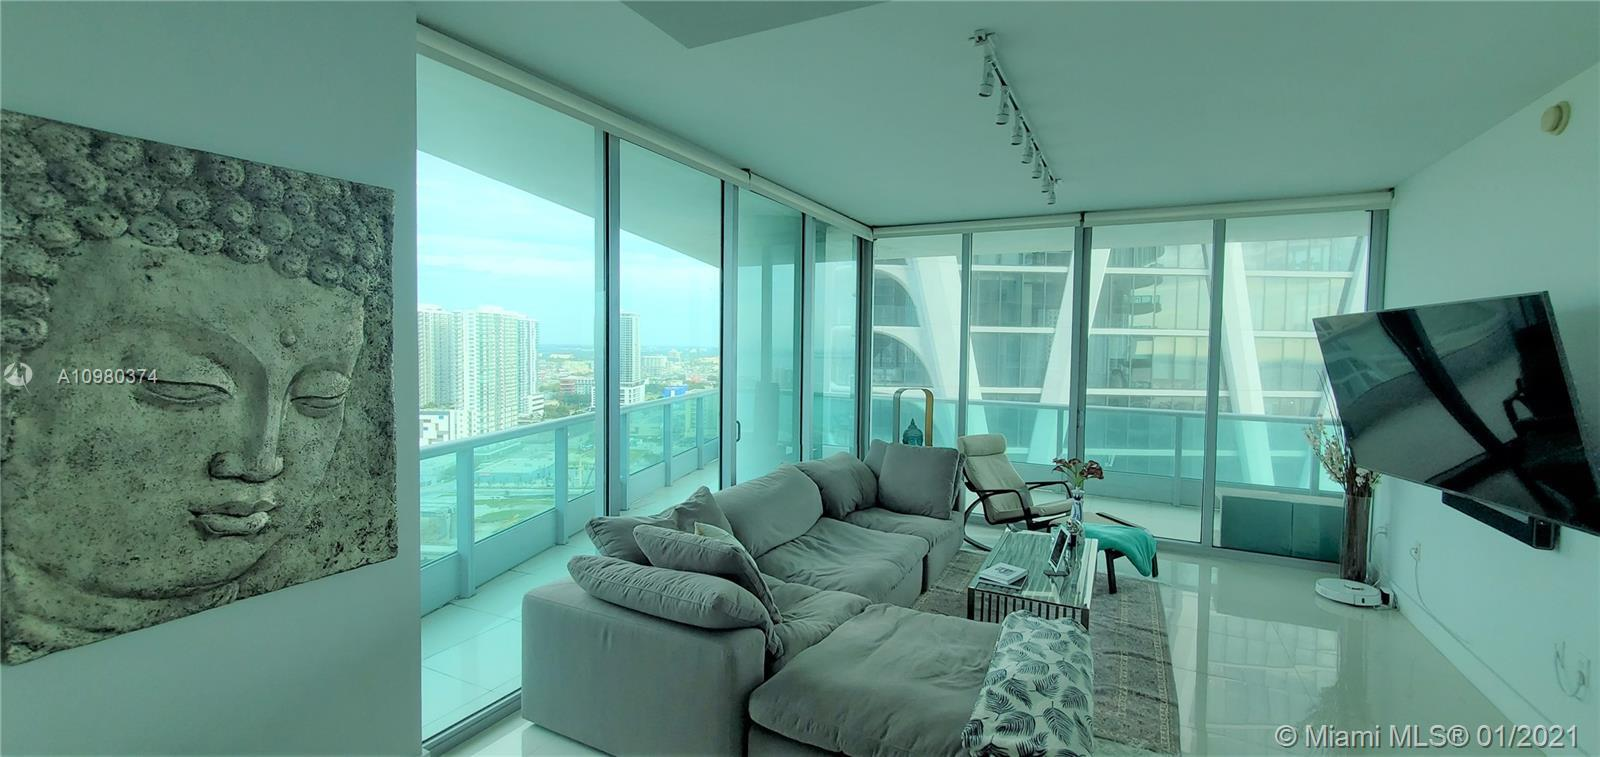 Just listed and price to sell immediately! Fully furnished large 2/2.5 corner unit. Panoramic bat an